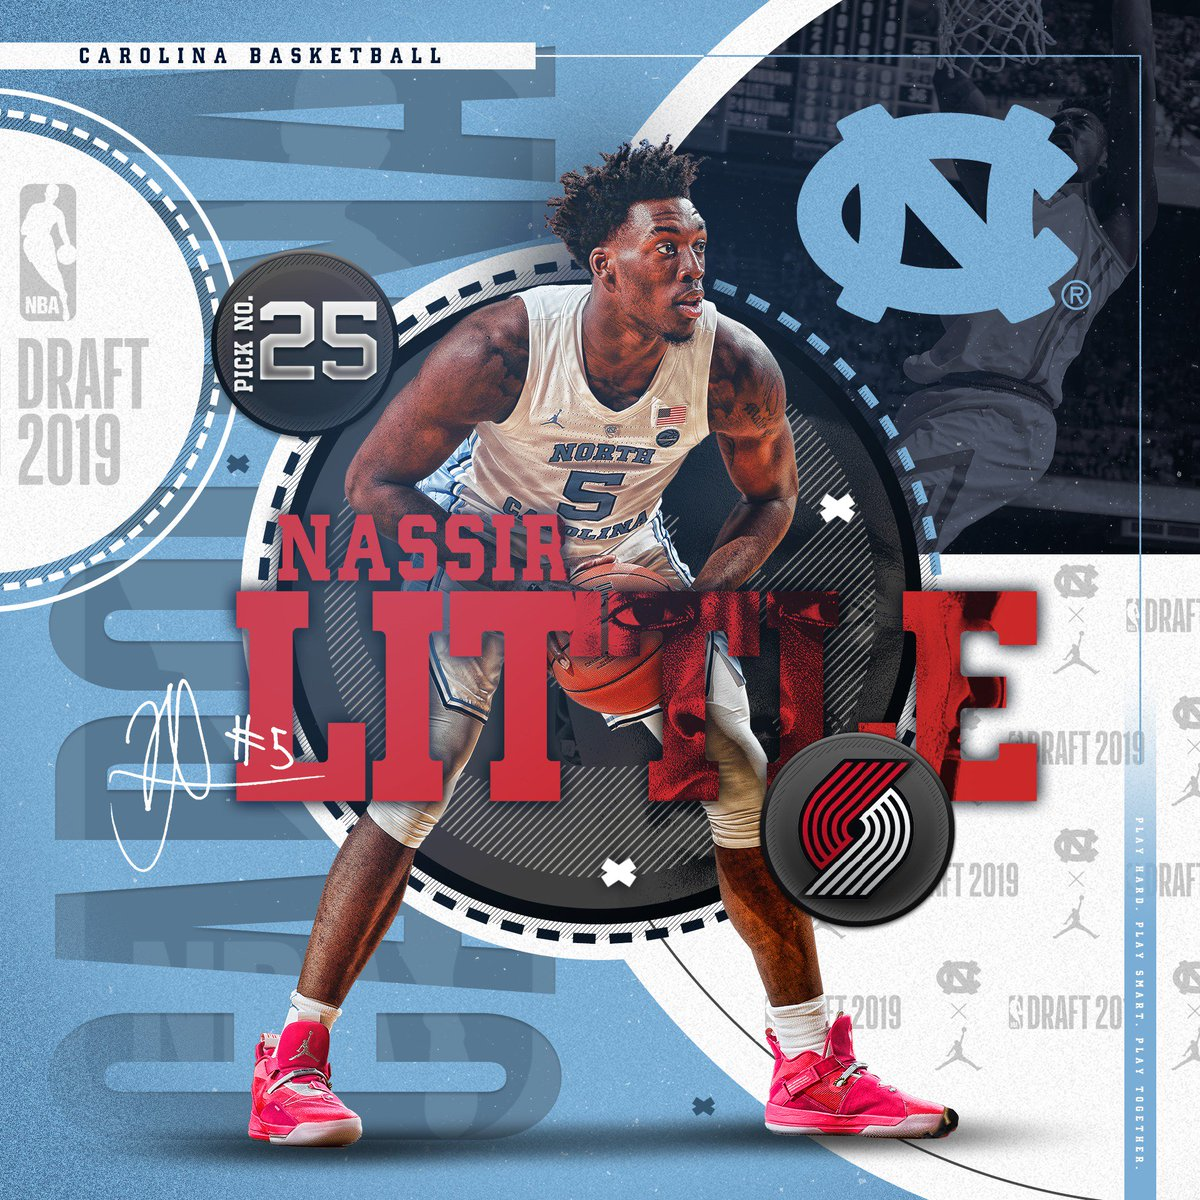 Let 'em Know!   With the 25th pick of the 2019 #NBADraft, the @trailblazers select UNC's Nassir Little.  #CarolinaSZN | #NBADraft | @2ez_nassie